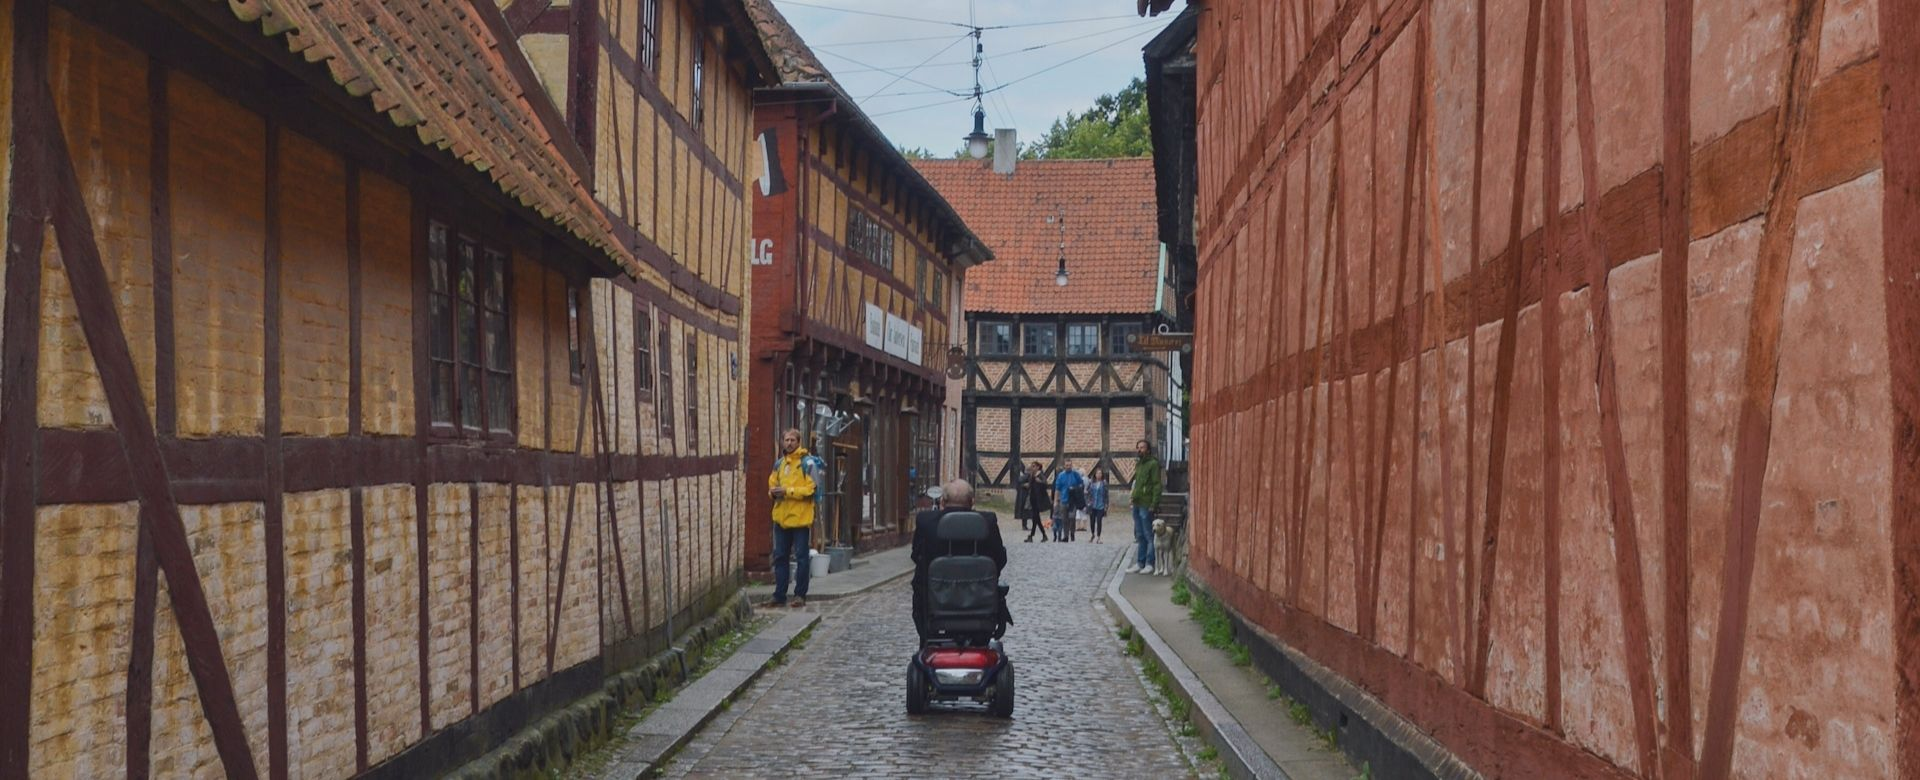 A man in a power wheelchair showing how accessible travel is done in Aarhus, Denmark